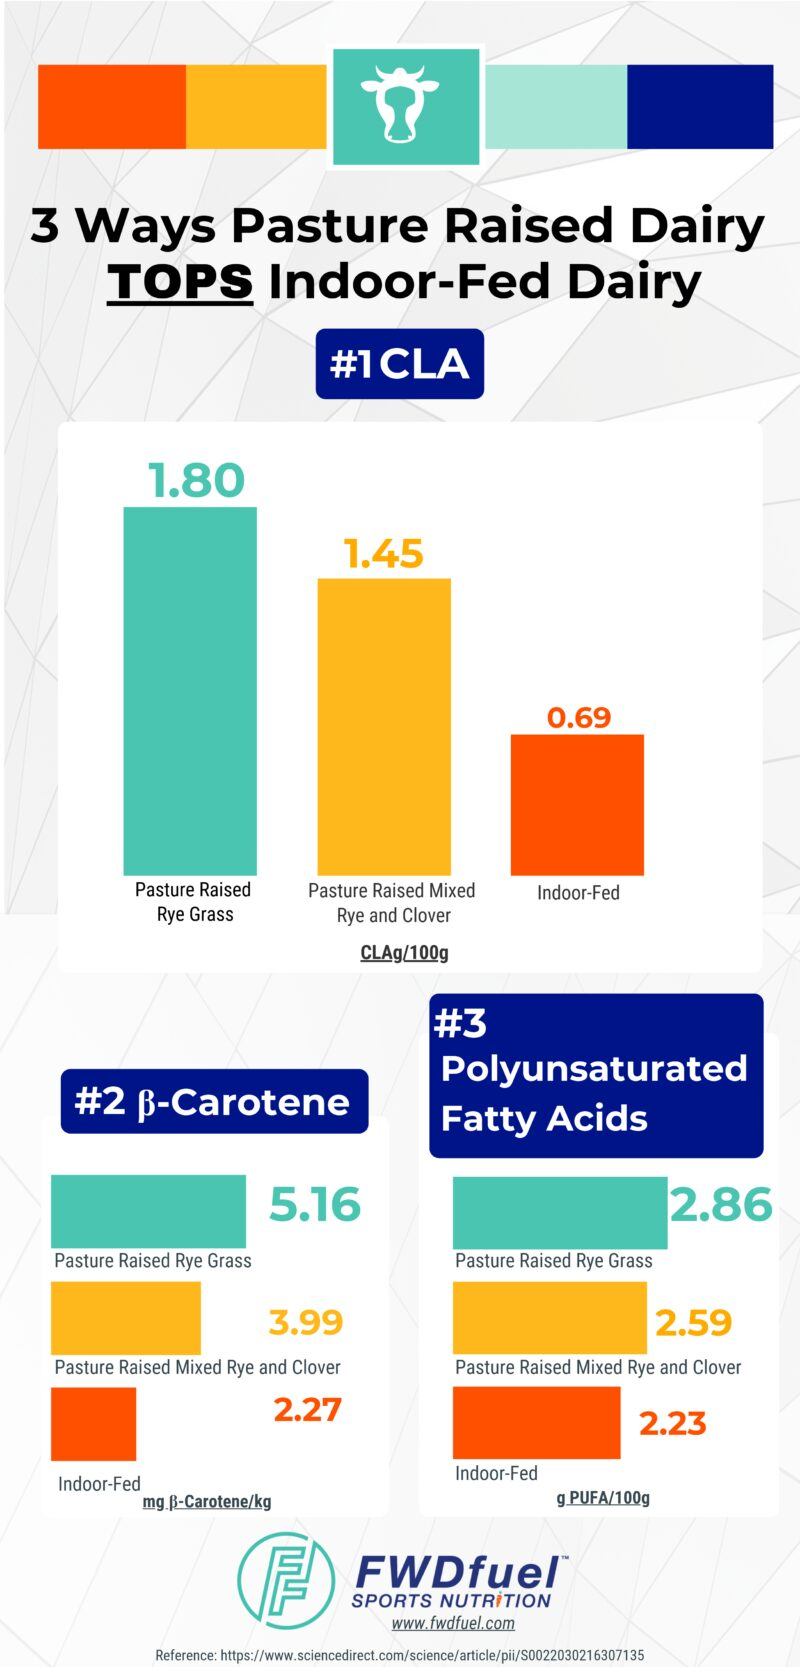 Infographic showing the greater health benefits of pasture raised dairy vs indoor fed dairy in terms of CLA, Beta-Carotene, and Poly Unsaturated Fatty Acids